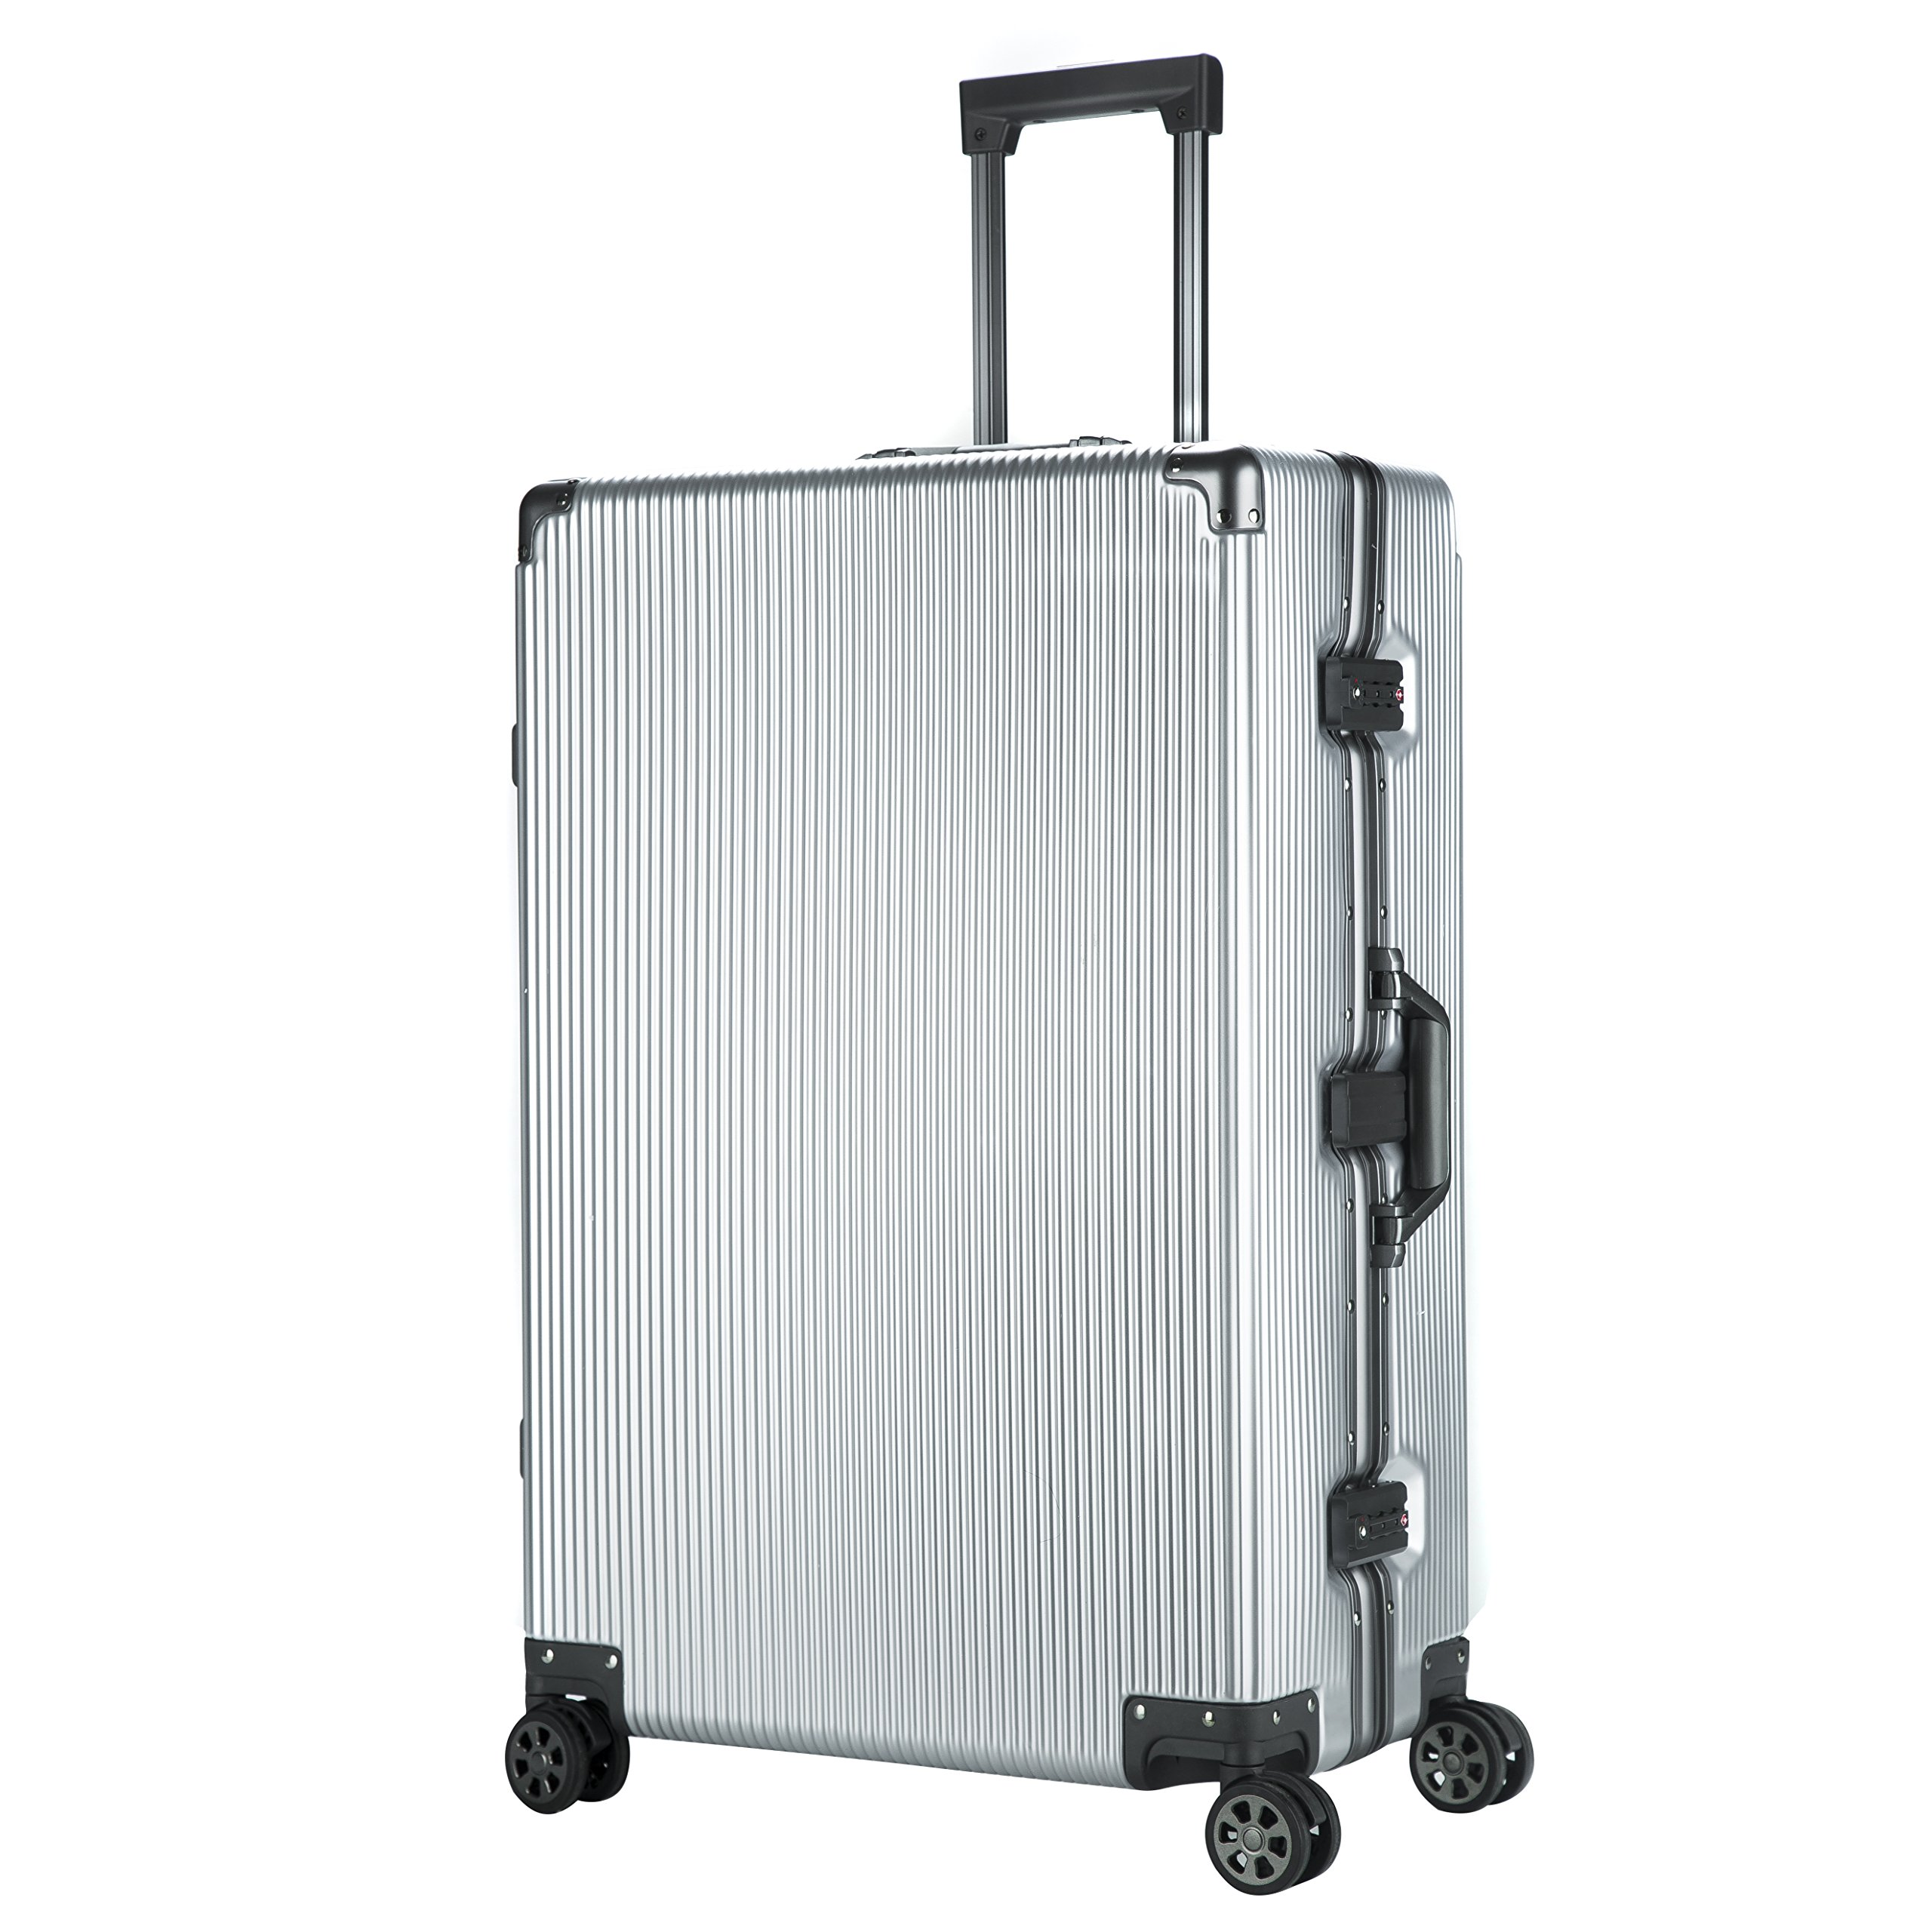 Aluminum Frame Luggage Hardside PC TSA Approved Spinner Suitcase 28'', Silver